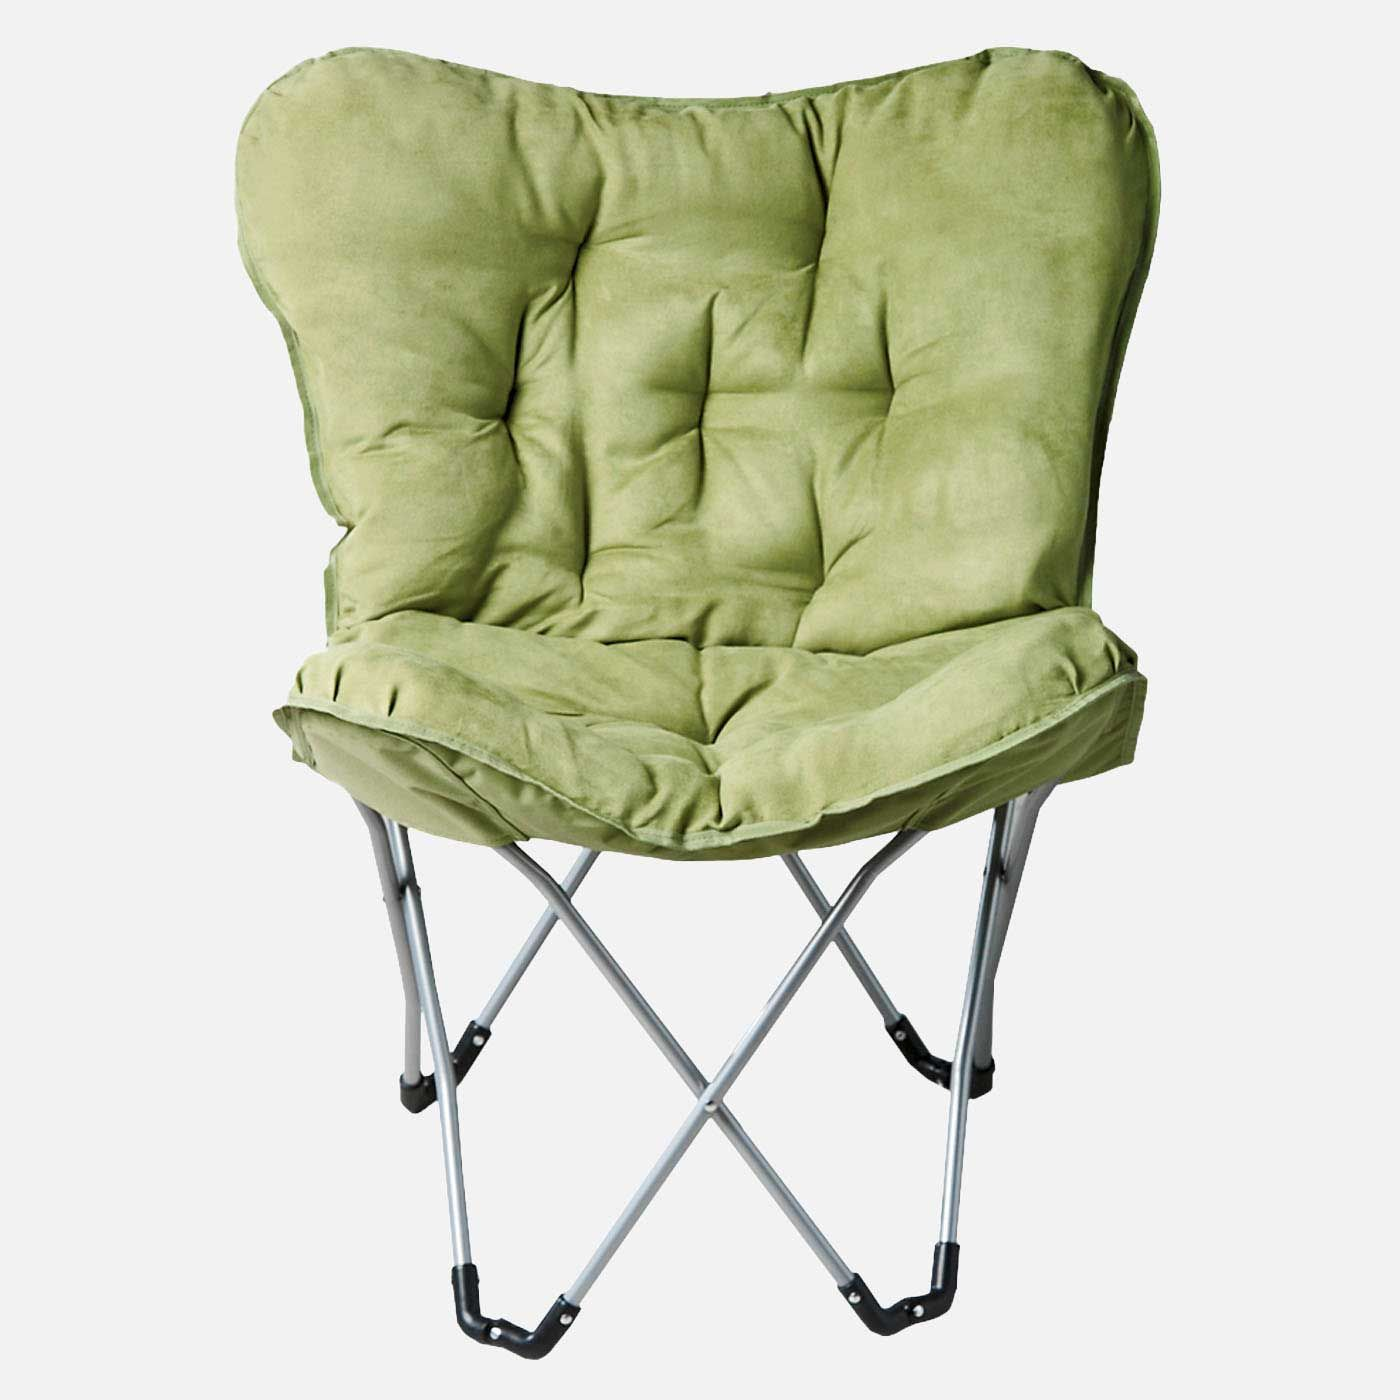 At Home Chairs Stylish Green Folding Chair With Cushion Chairs Pinterest